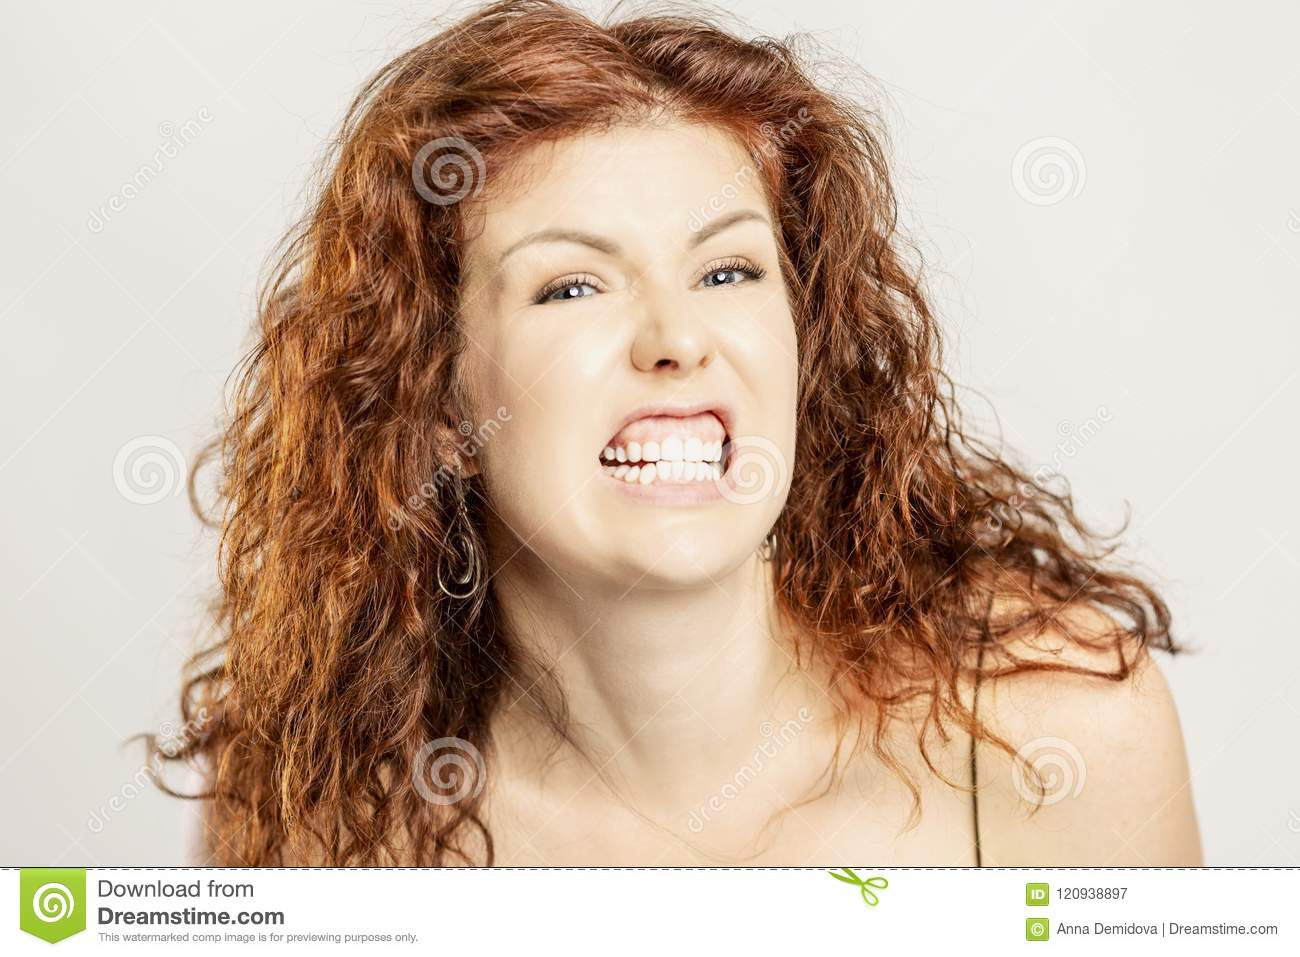 A beautiful woman is angry with an angry grin